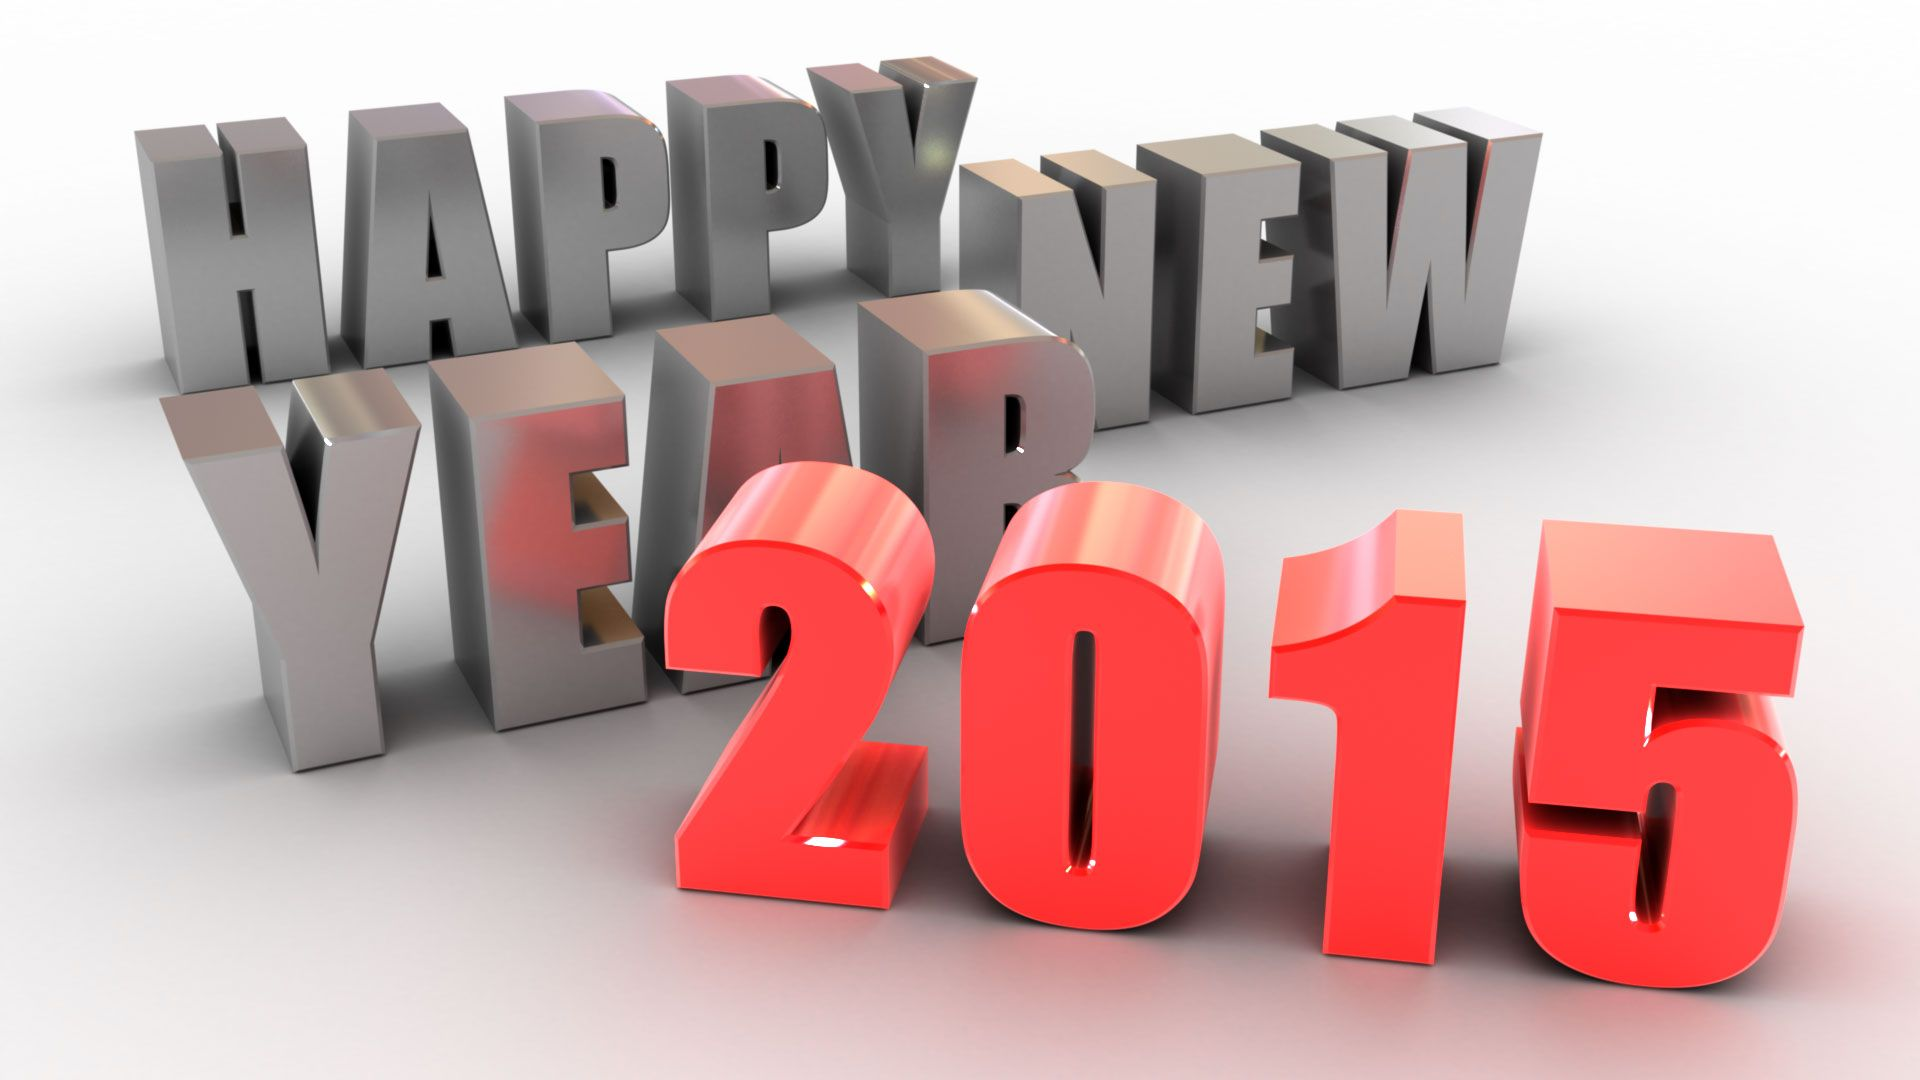 Happy New Year 2015 Wishes Messages Greetings Sms Whatsapp Friends Happy New Year 2015 Happy New Year Wallpaper Happy New Year 2019